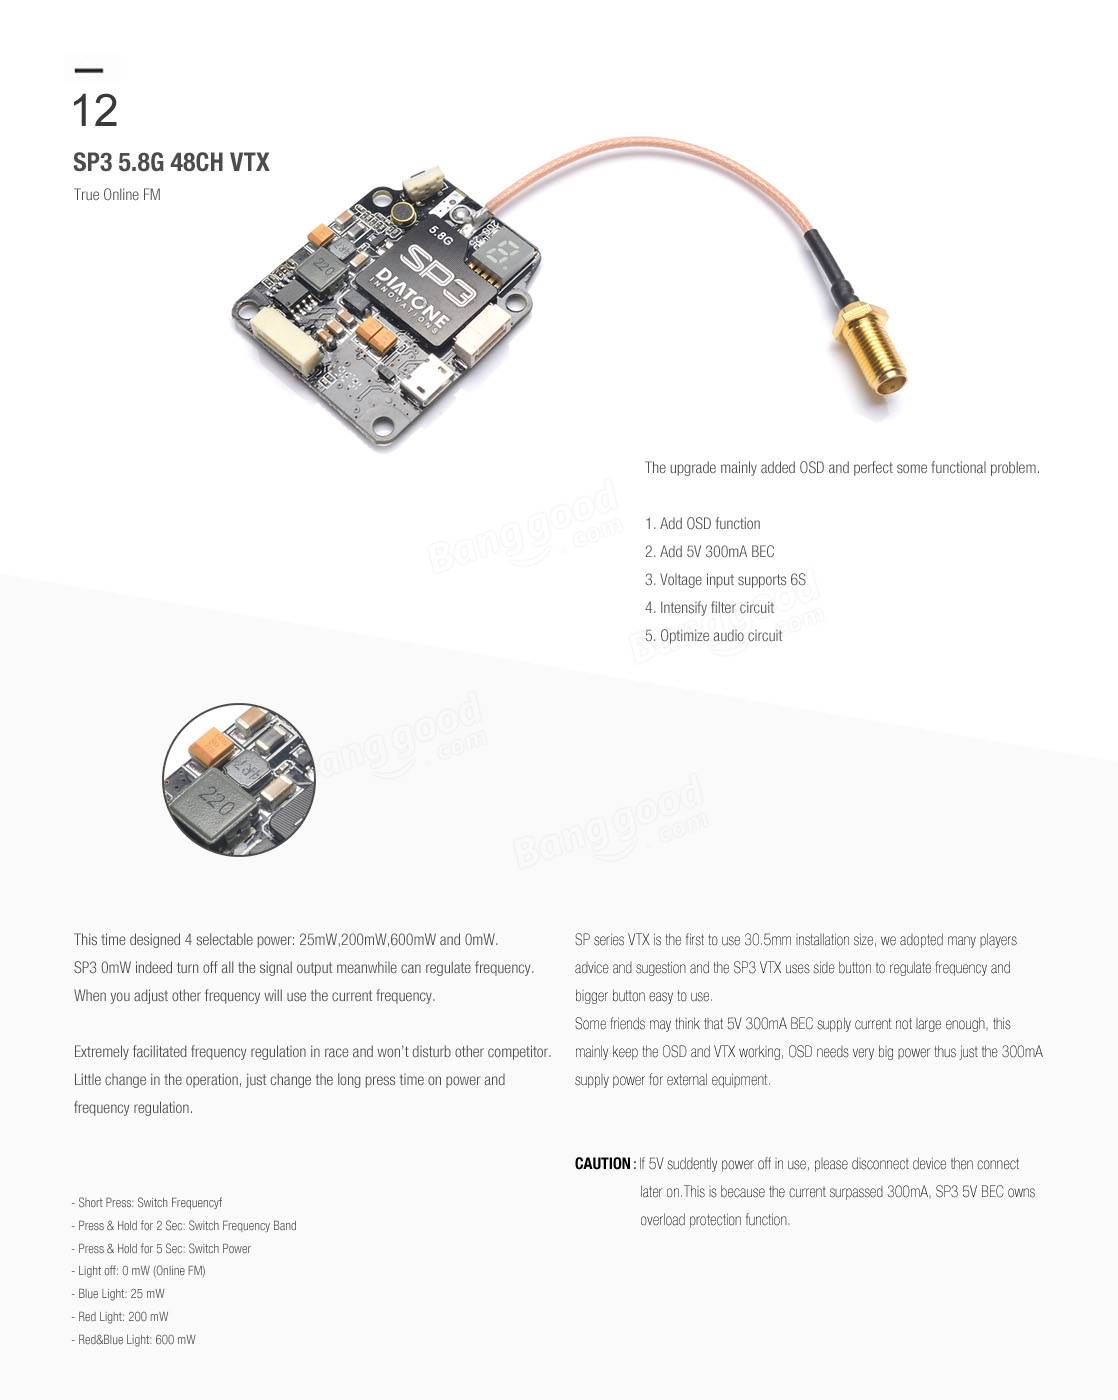 e32ff7ac f83d 431b b212 7bd80a71007e diatone crusader gt2 200 fpv racing drone w f3 sp3 48ch vtx 30a  at fashall.co